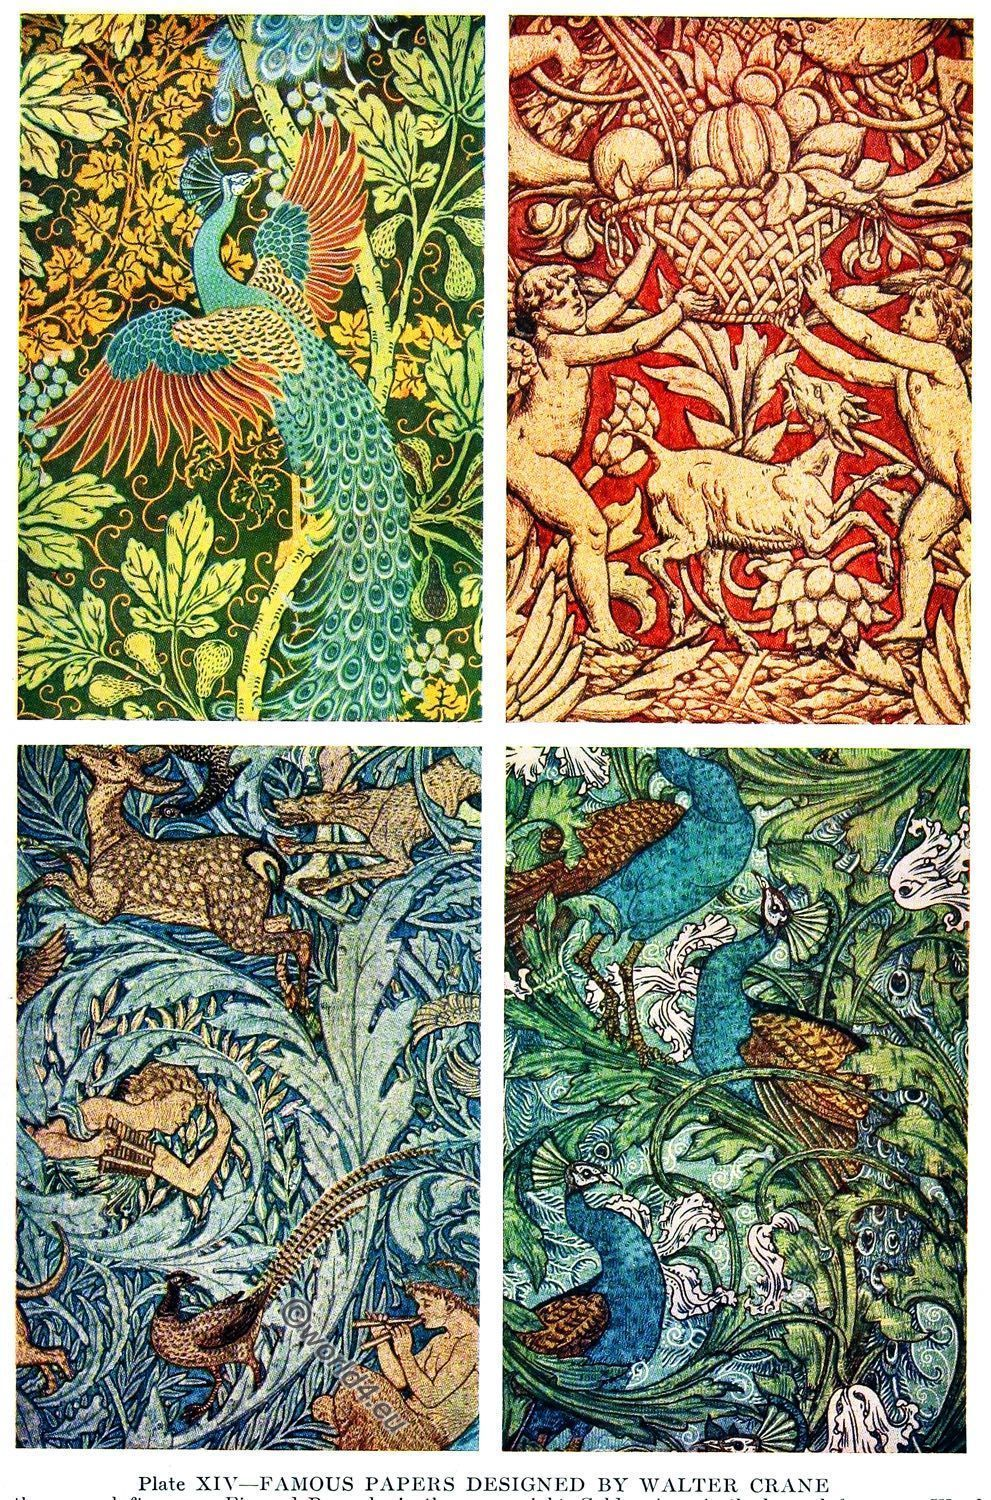 Famous Papers Designed By Walter Crane Arts And Crafts Movement Art And Craft Videos Art And Craft Design Summer Arts And Crafts